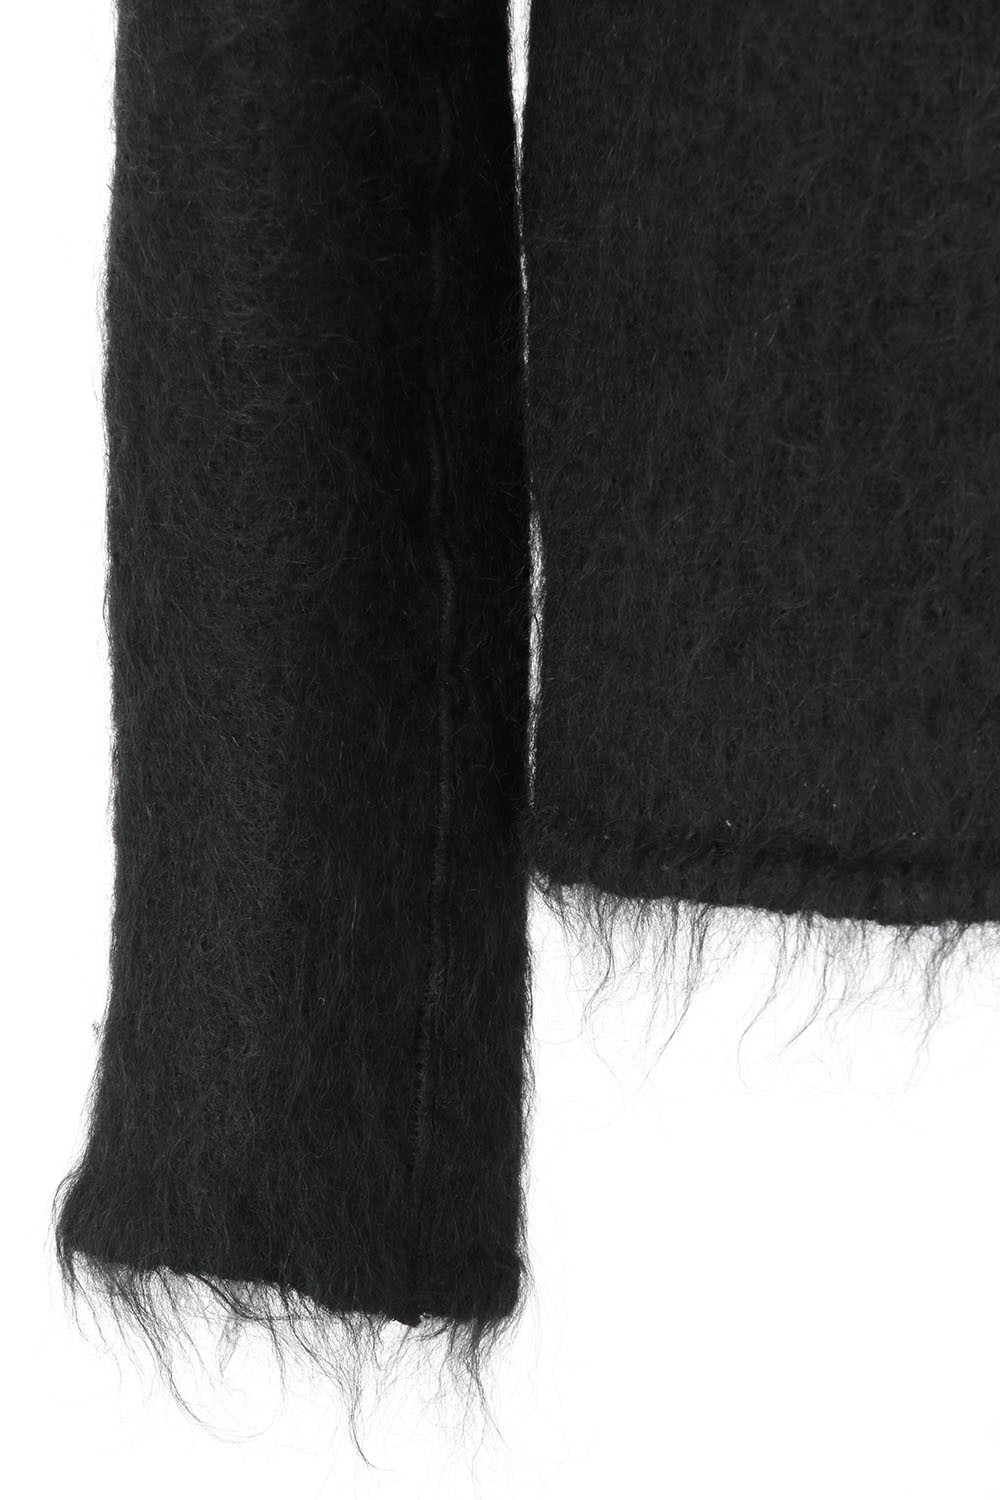 High Compression Mohair Like Knit Limited Edition - K02-T04